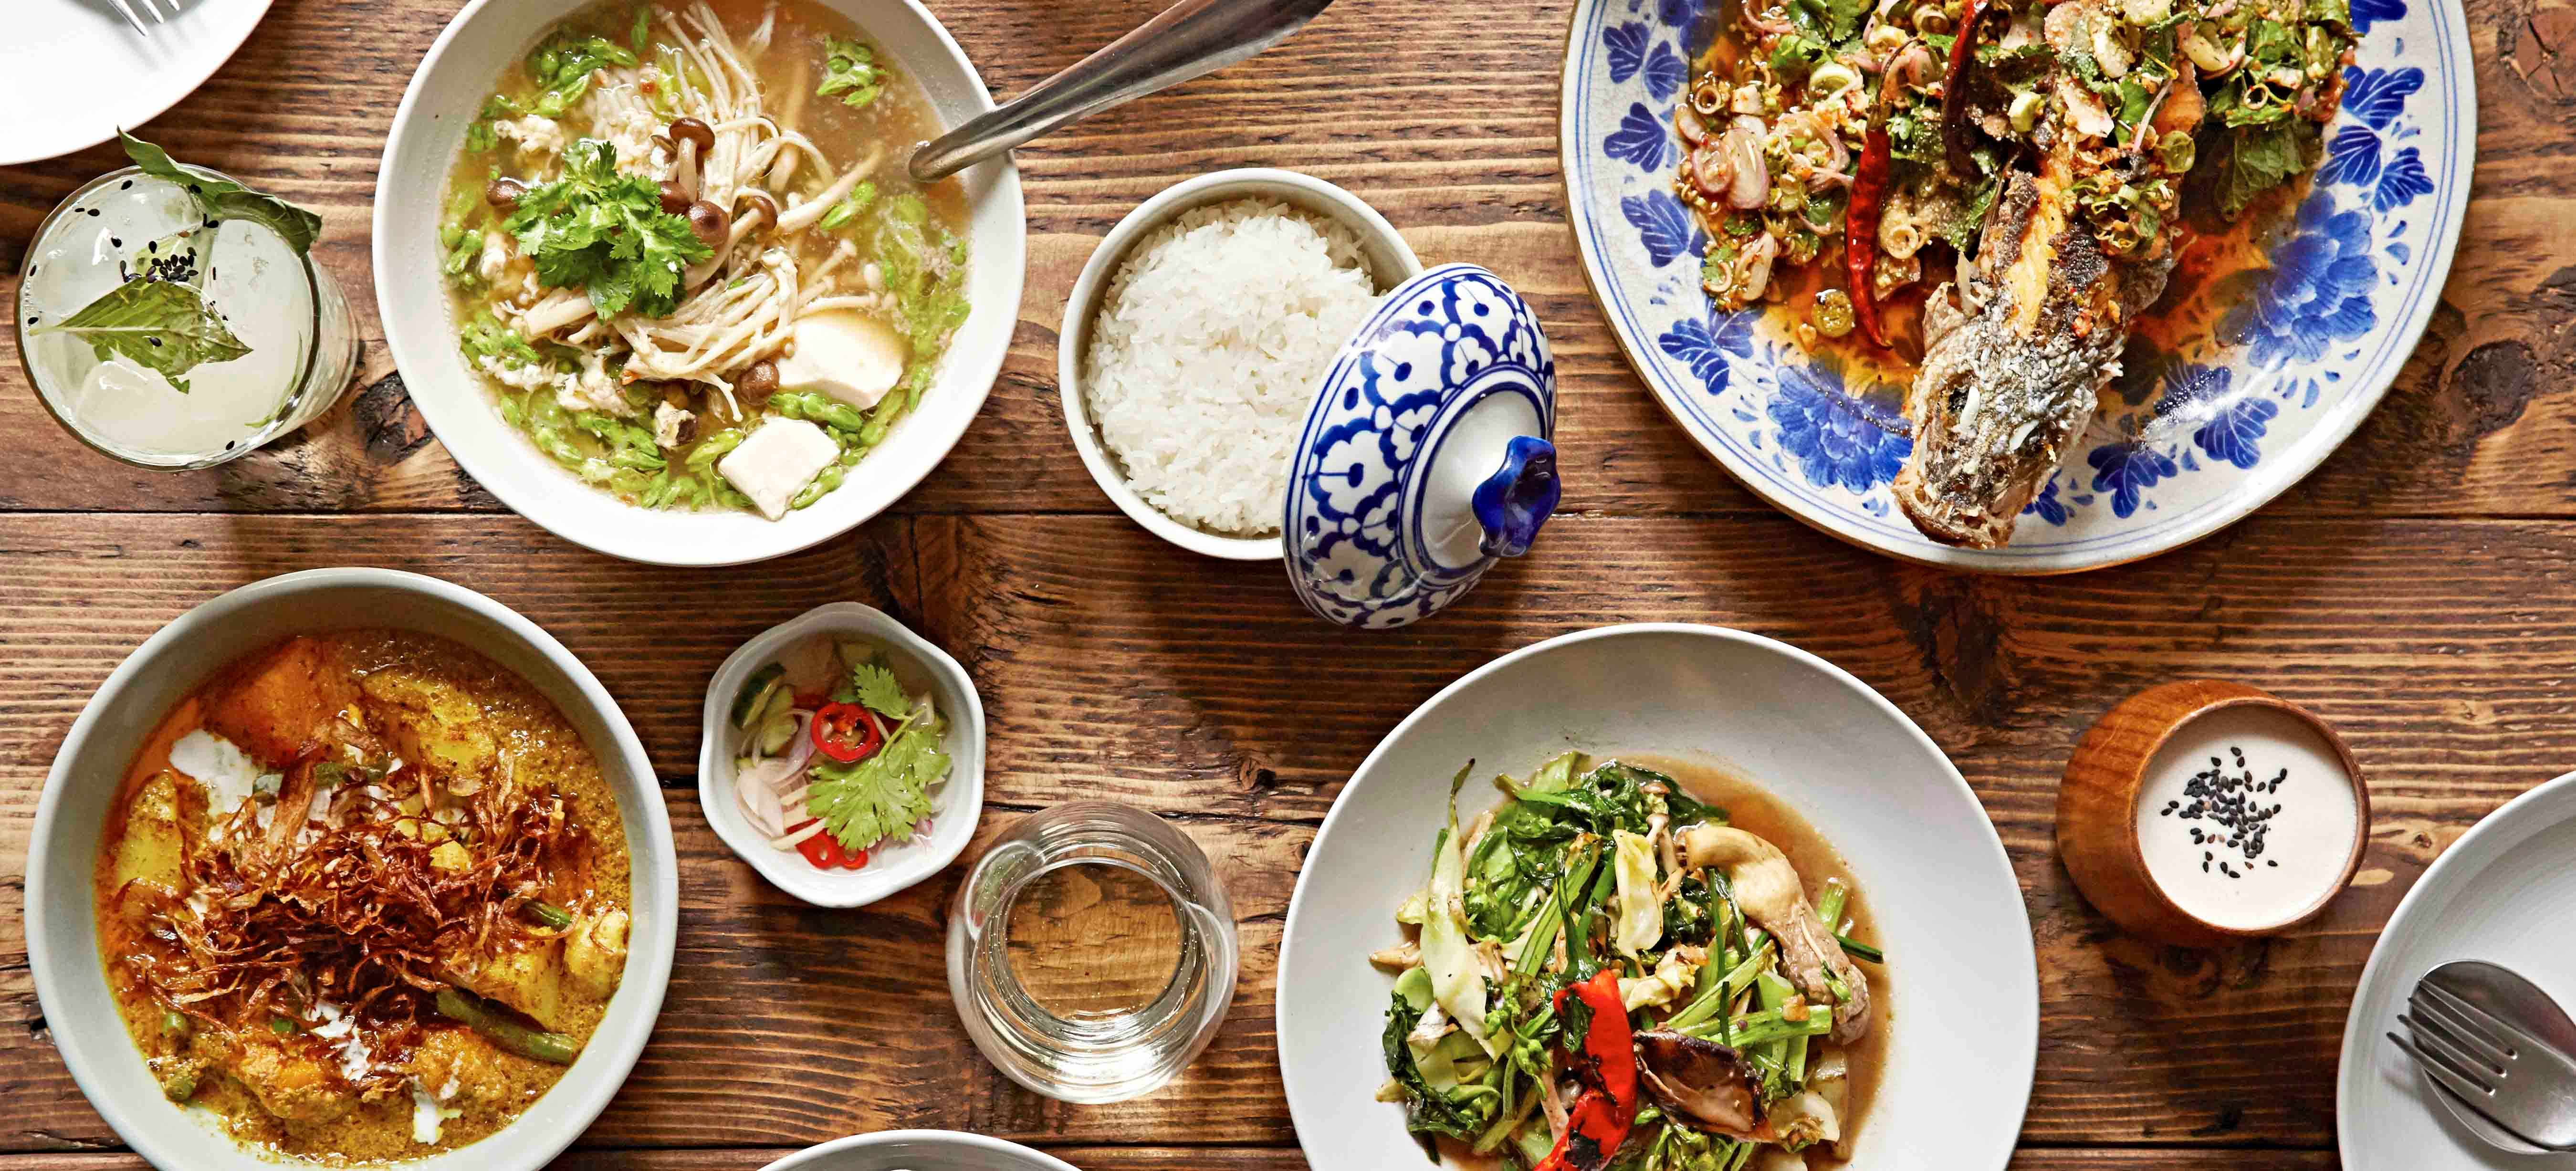 Overhead shot of Thai dishes on a wooden table at Somsaa